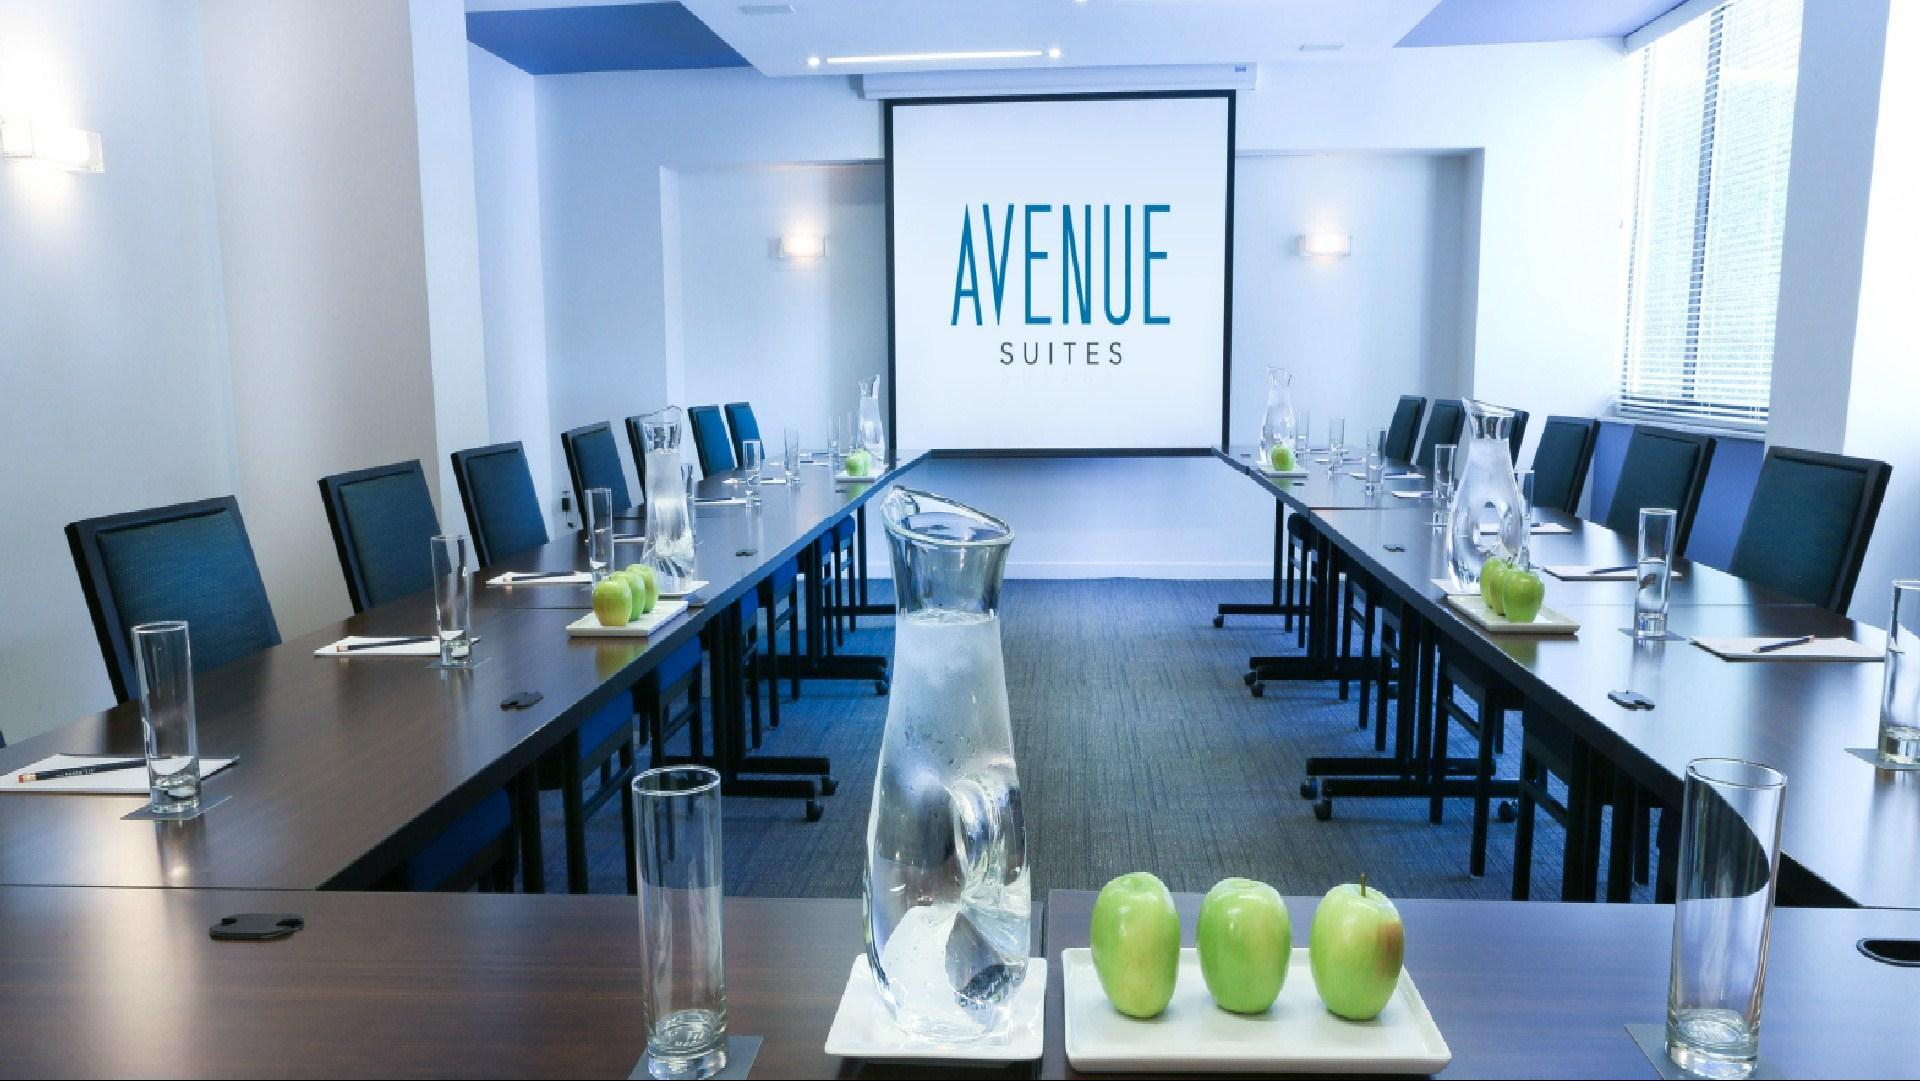 Off Terrace event space at Avenue Suites in Washington DC, Maryland, Virginia, DC Area